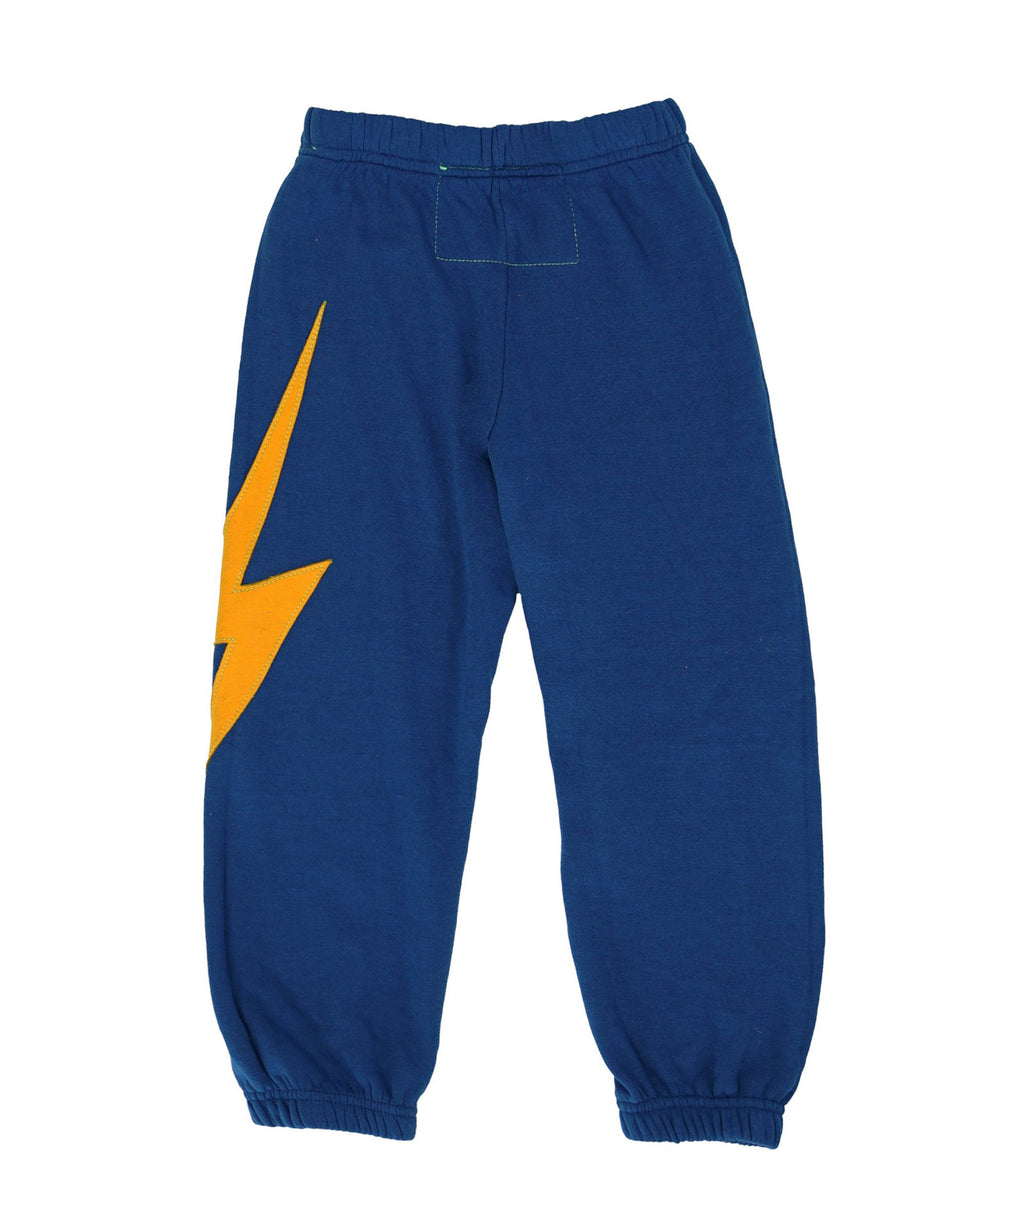 Aviator Nation Girls Blue Bolt Sweatpants